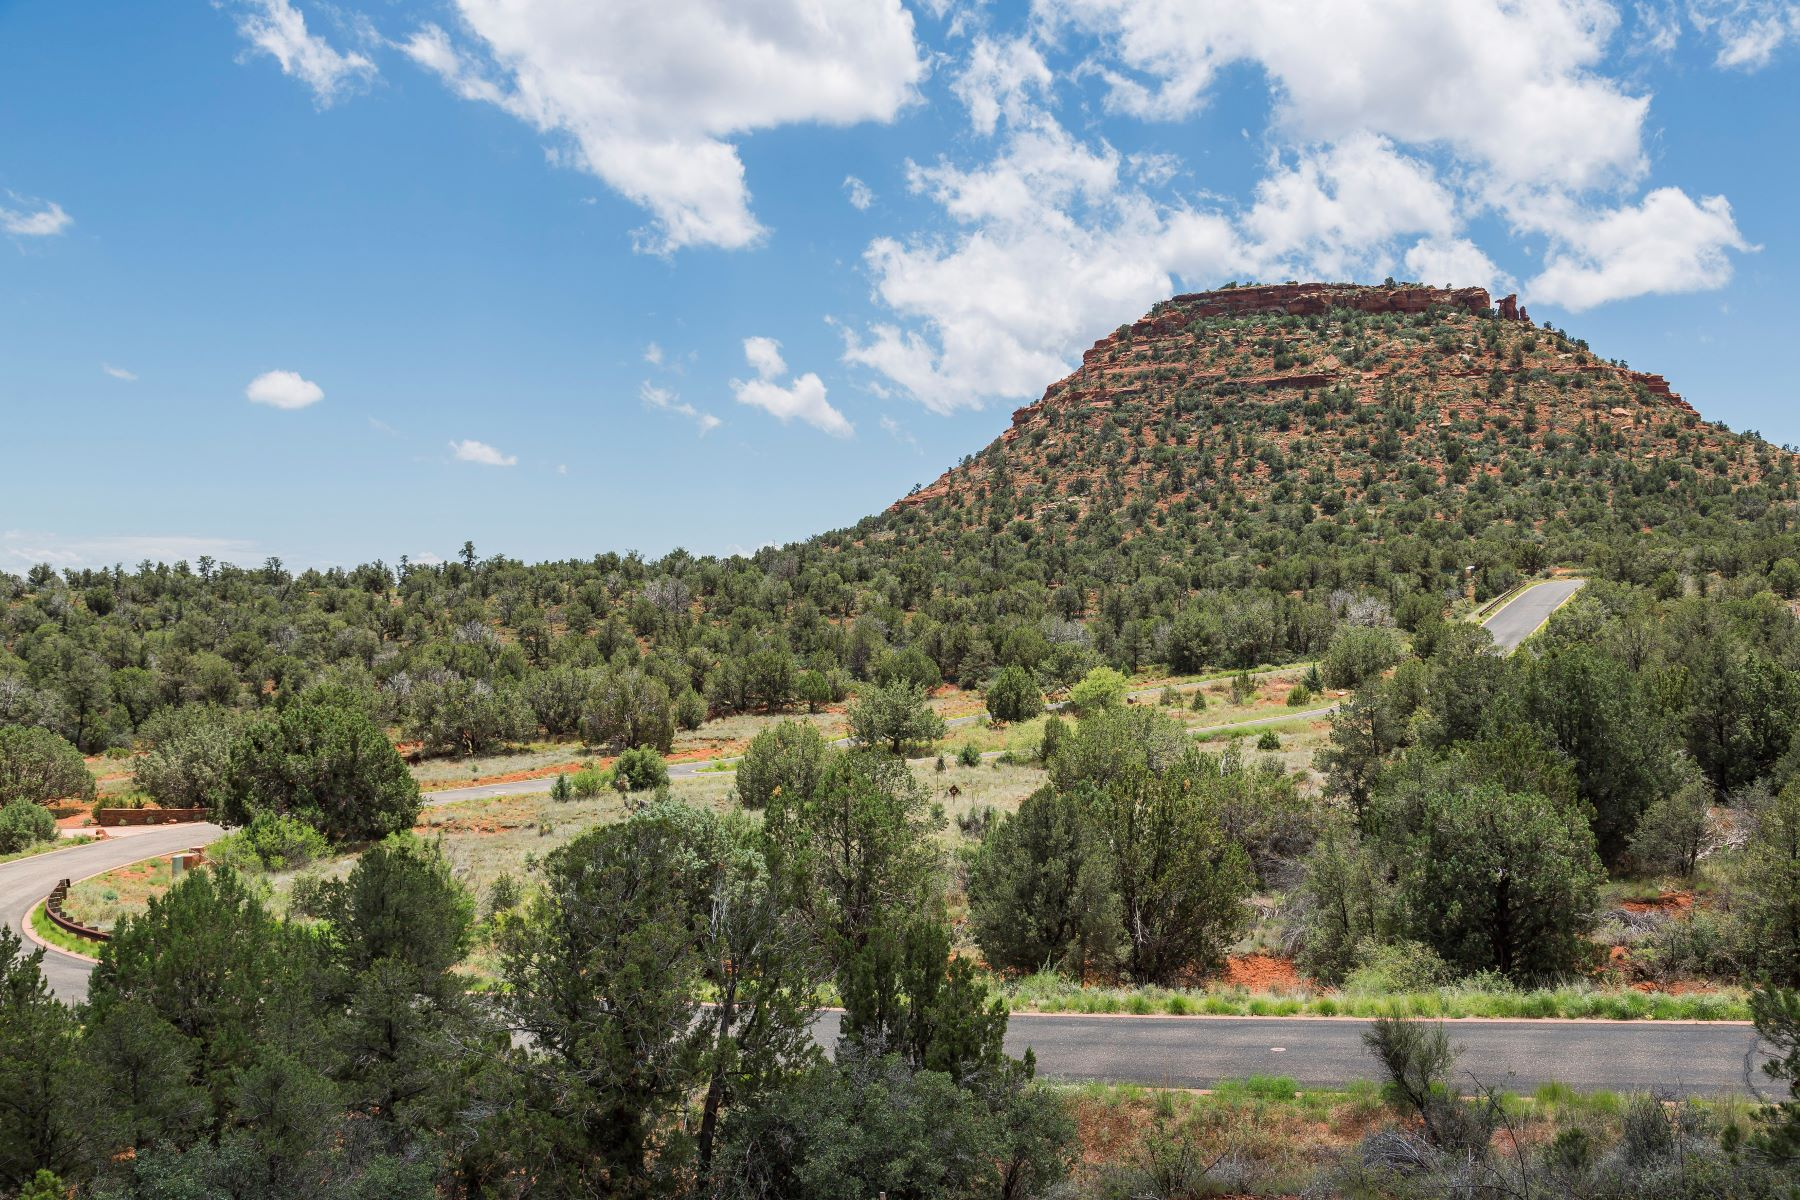 Land for Sale at Aerie Lot 21 140 Altair Ave 21, Sedona, Arizona, 86336 United States